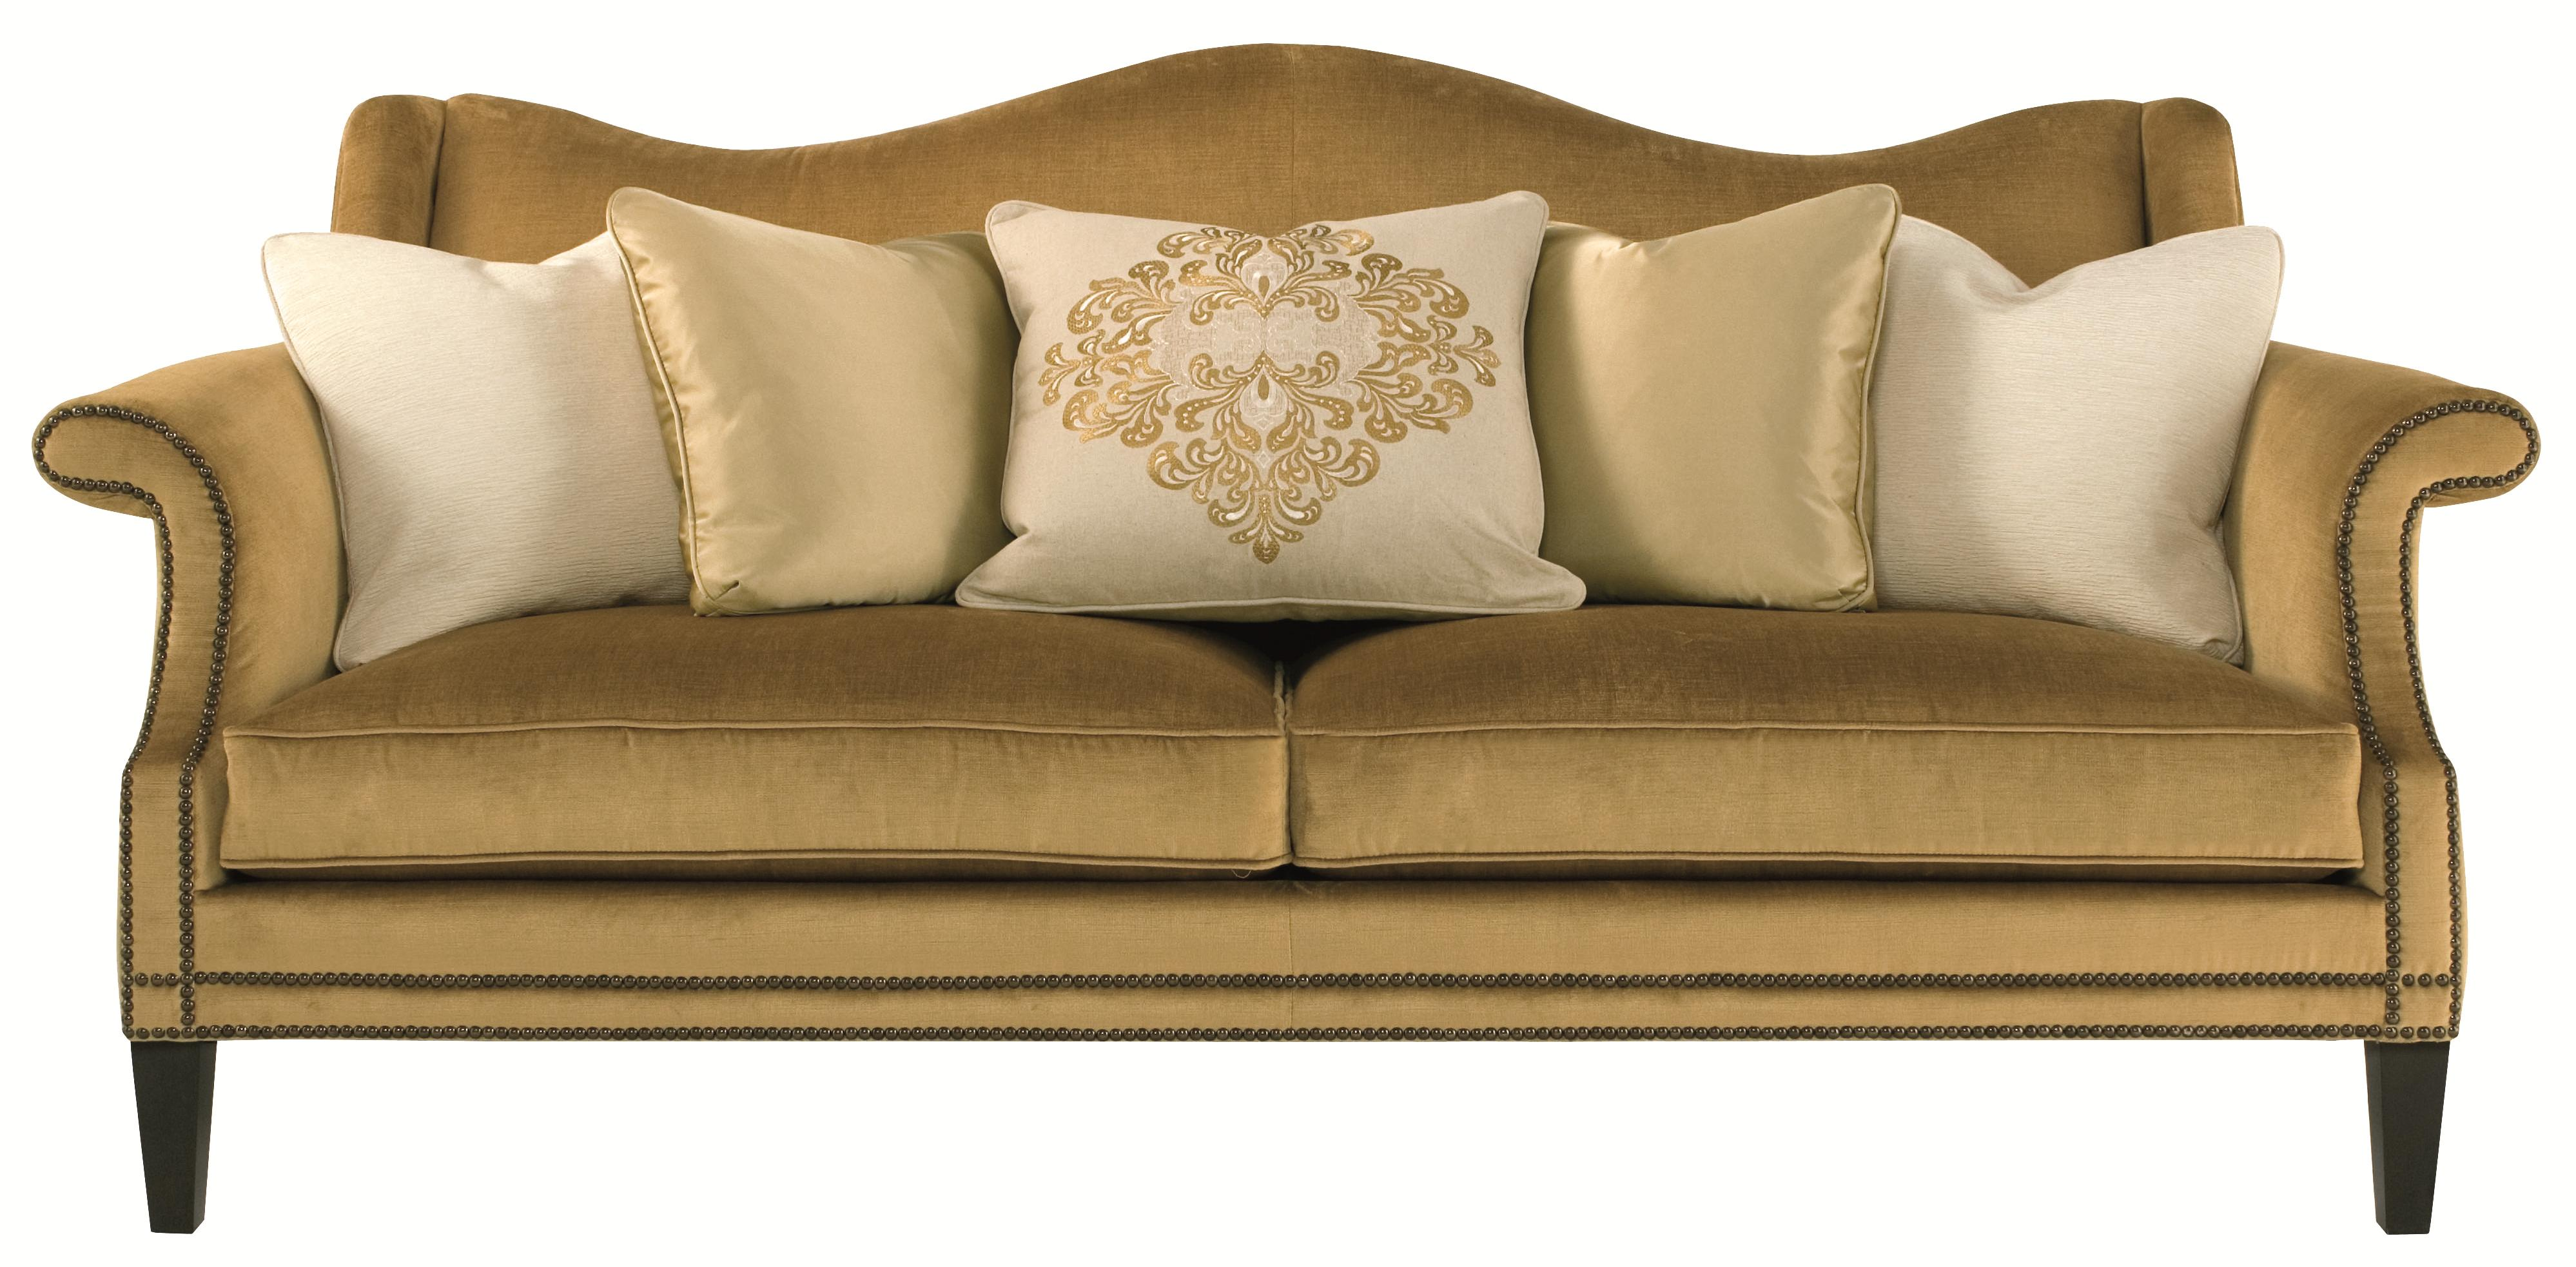 Bernhardt Upholstered Accents Fitzgerald Sofa with Camel